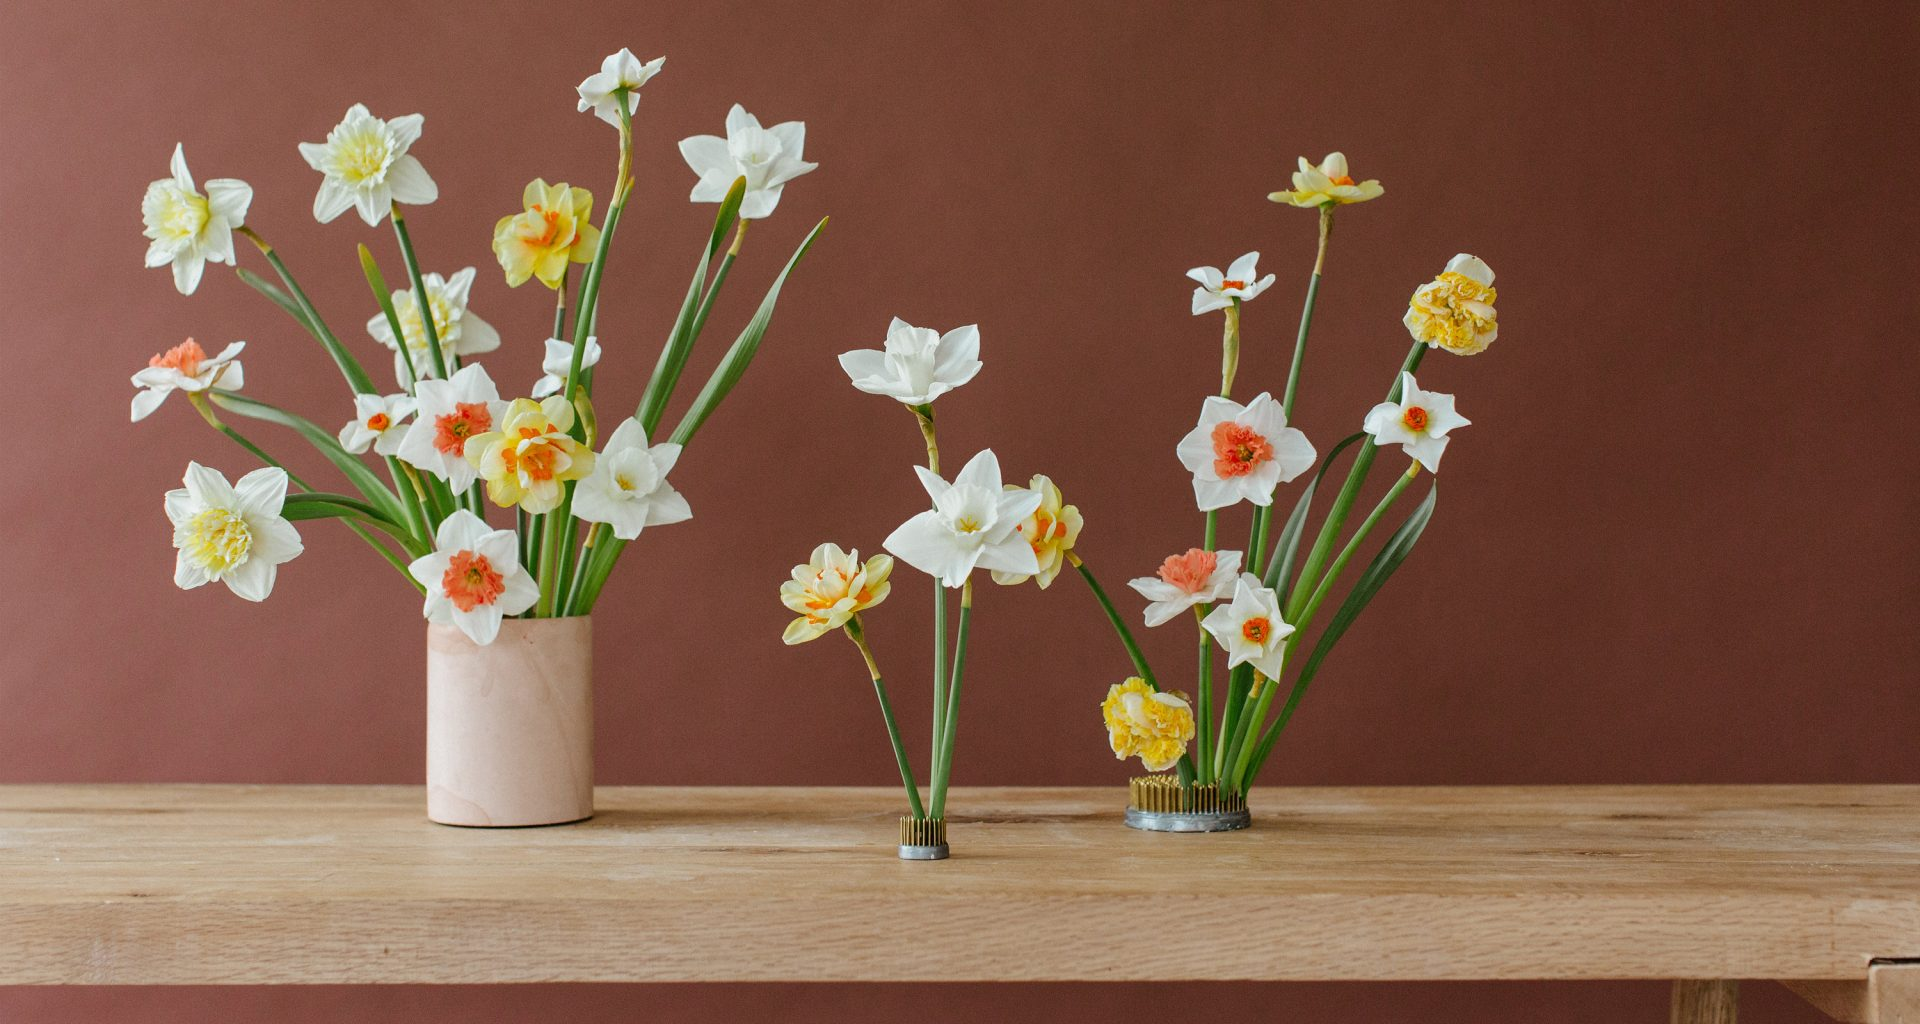 The Definitive Guide to Daffodils